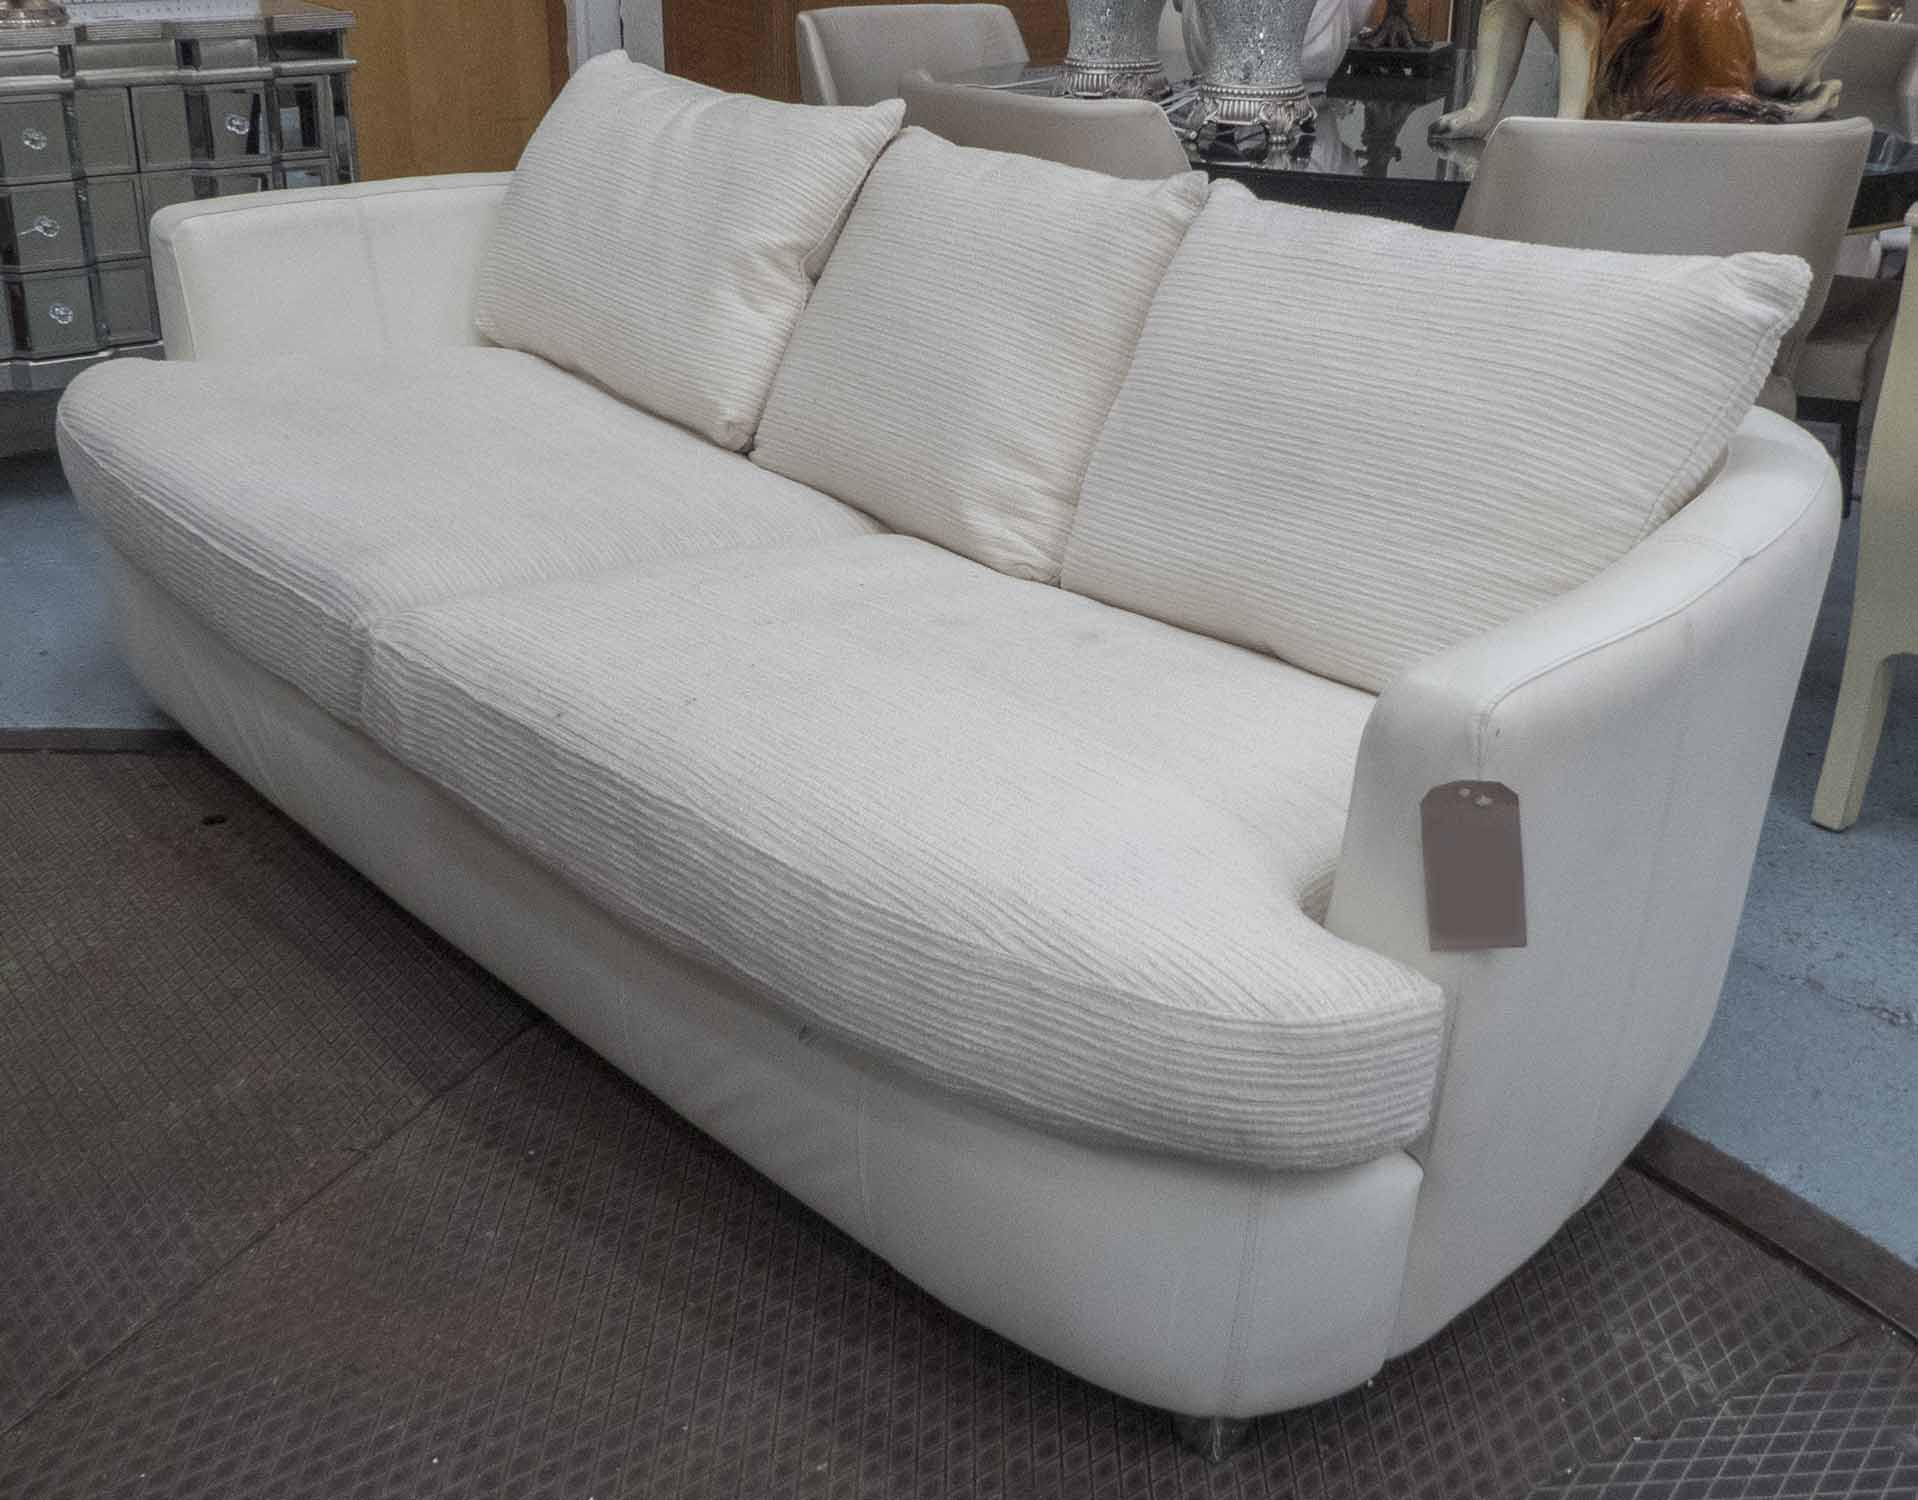 Lot 7 - SOFA, two large seater, in cream leather and cream fabric, on metal supports, 231cm long.